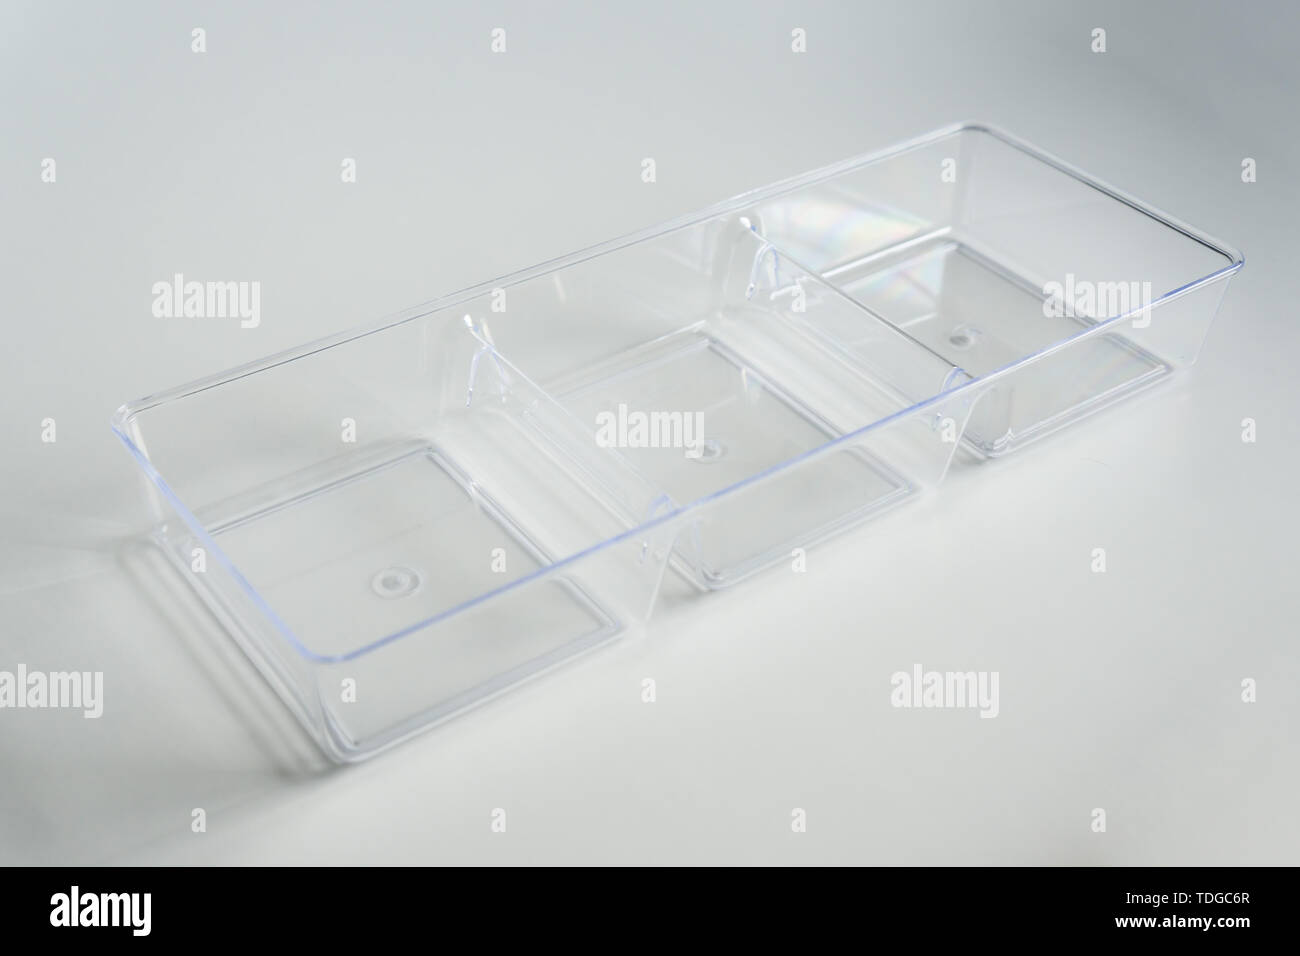 Acrylic clear plastic organizer with 3 square compartments on a white background with empty room space for copy or text. Dividers made of see through  - Stock Image